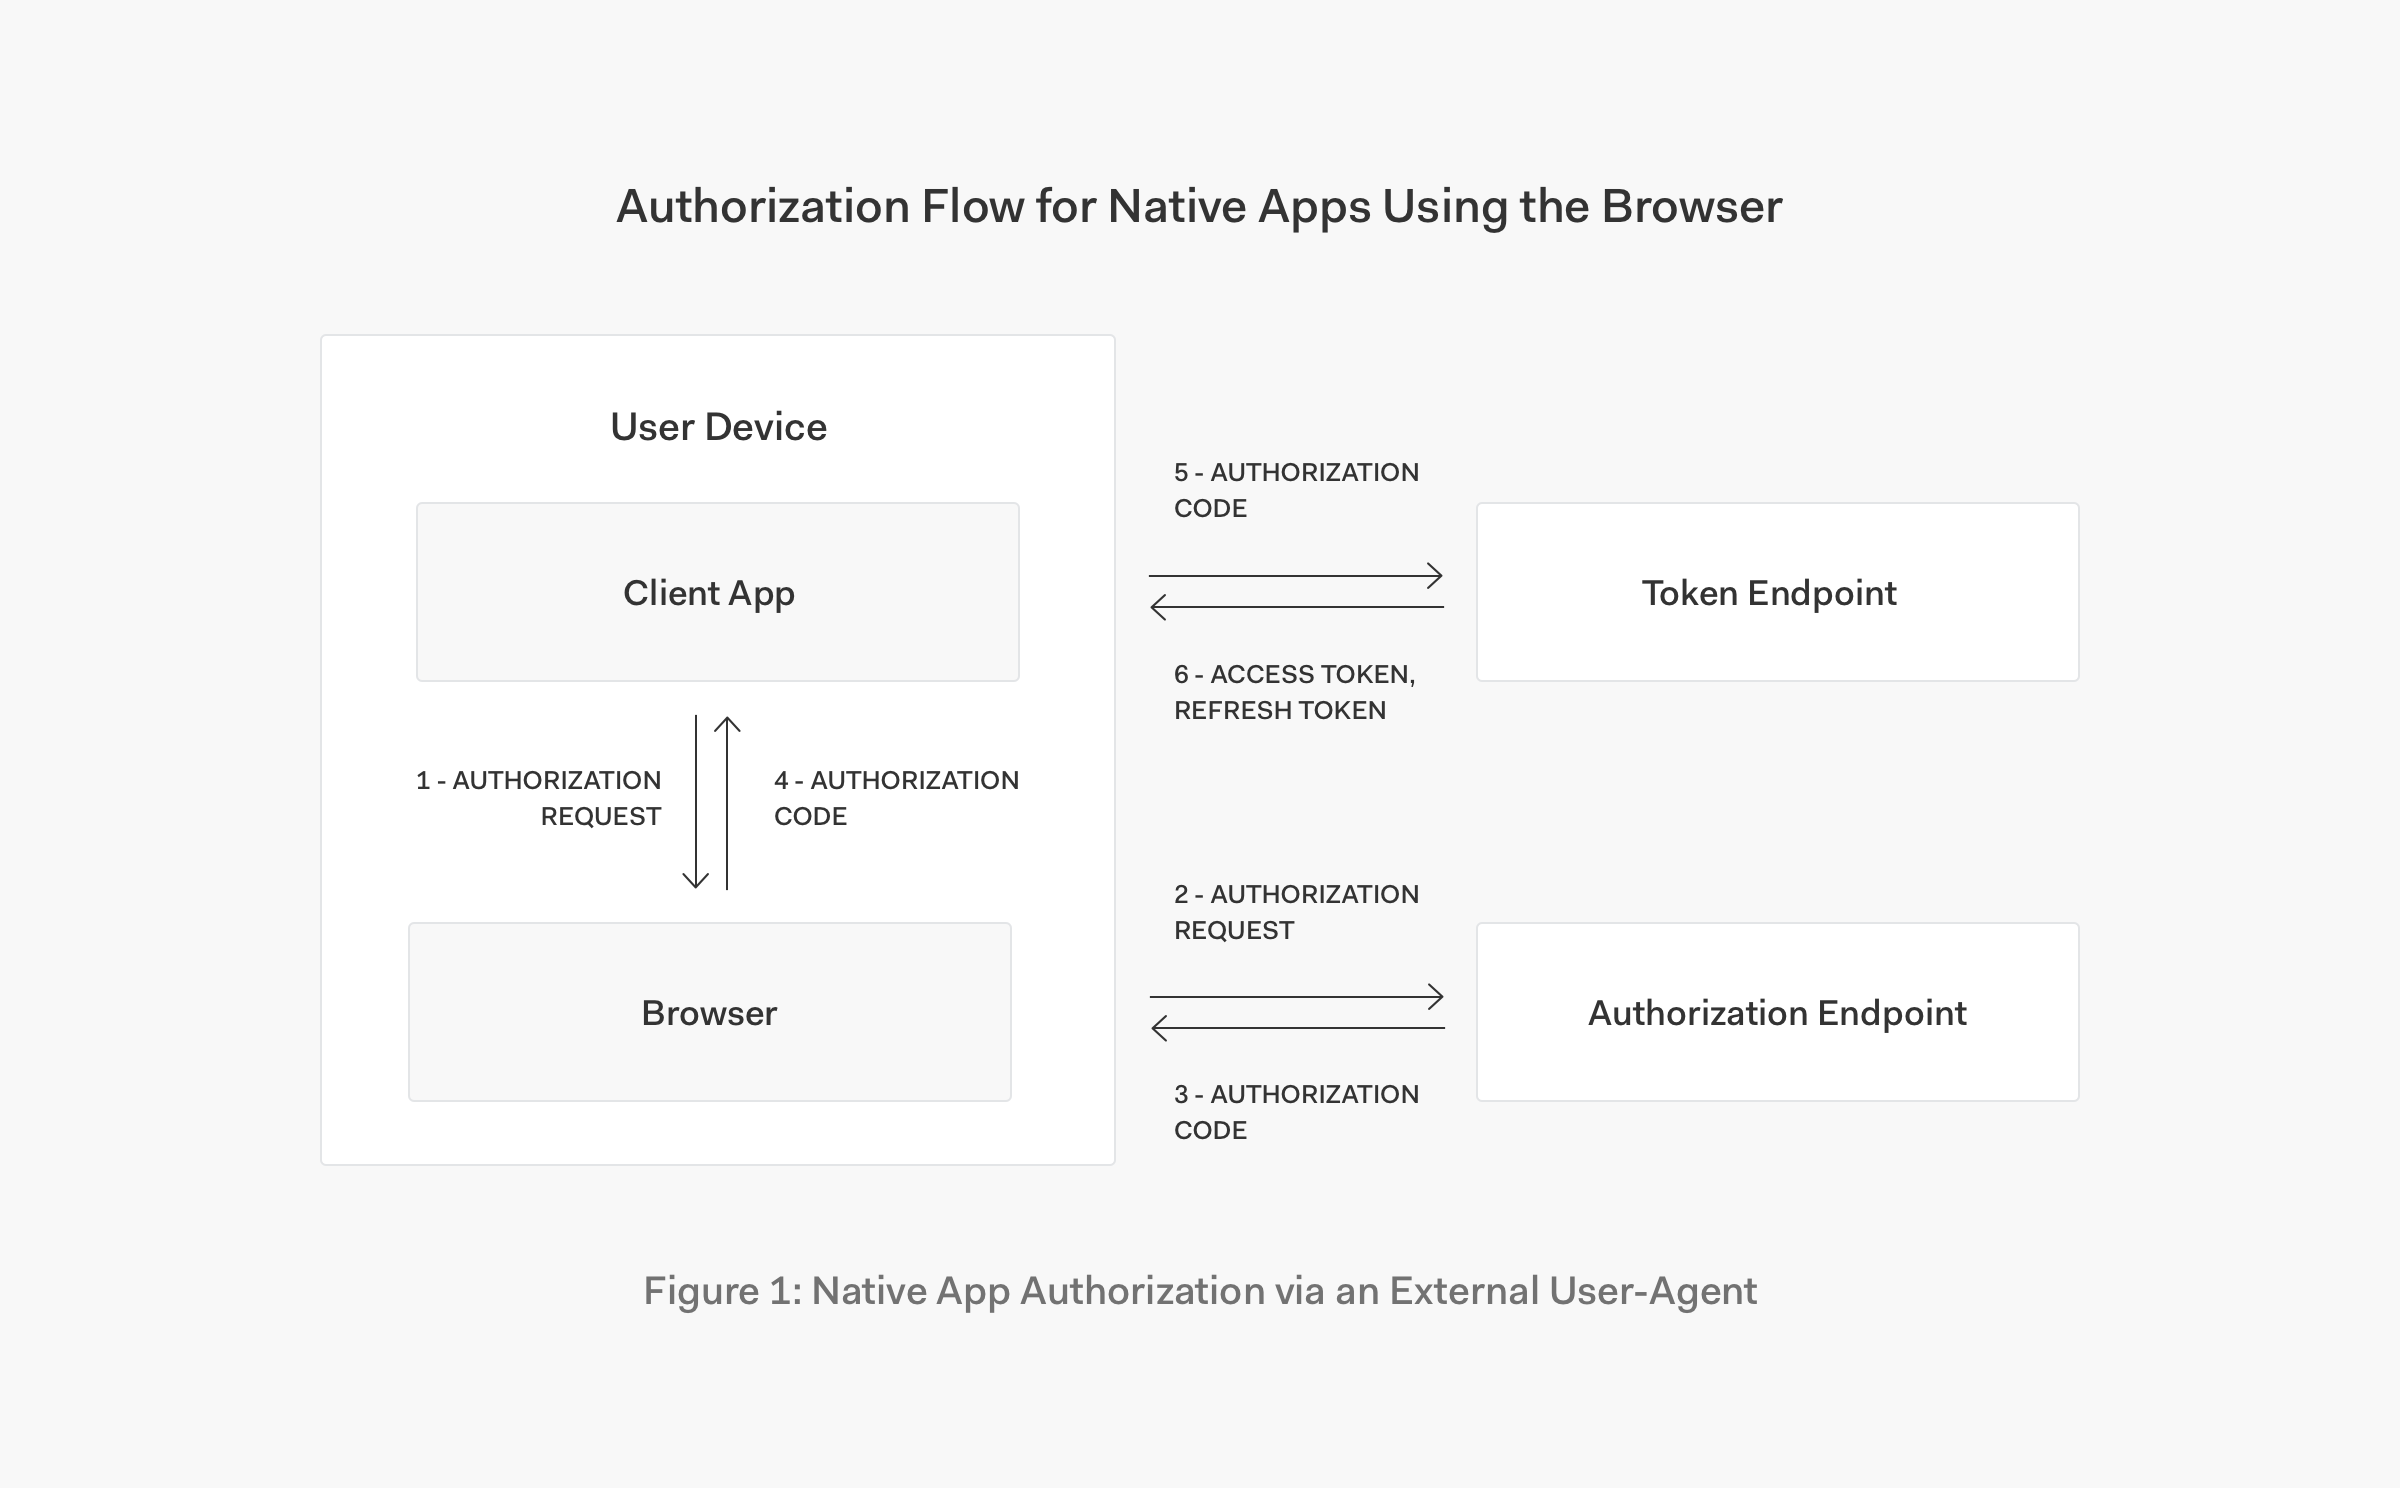 Authorization flow for OAuth 2.0 in native apps using the browser